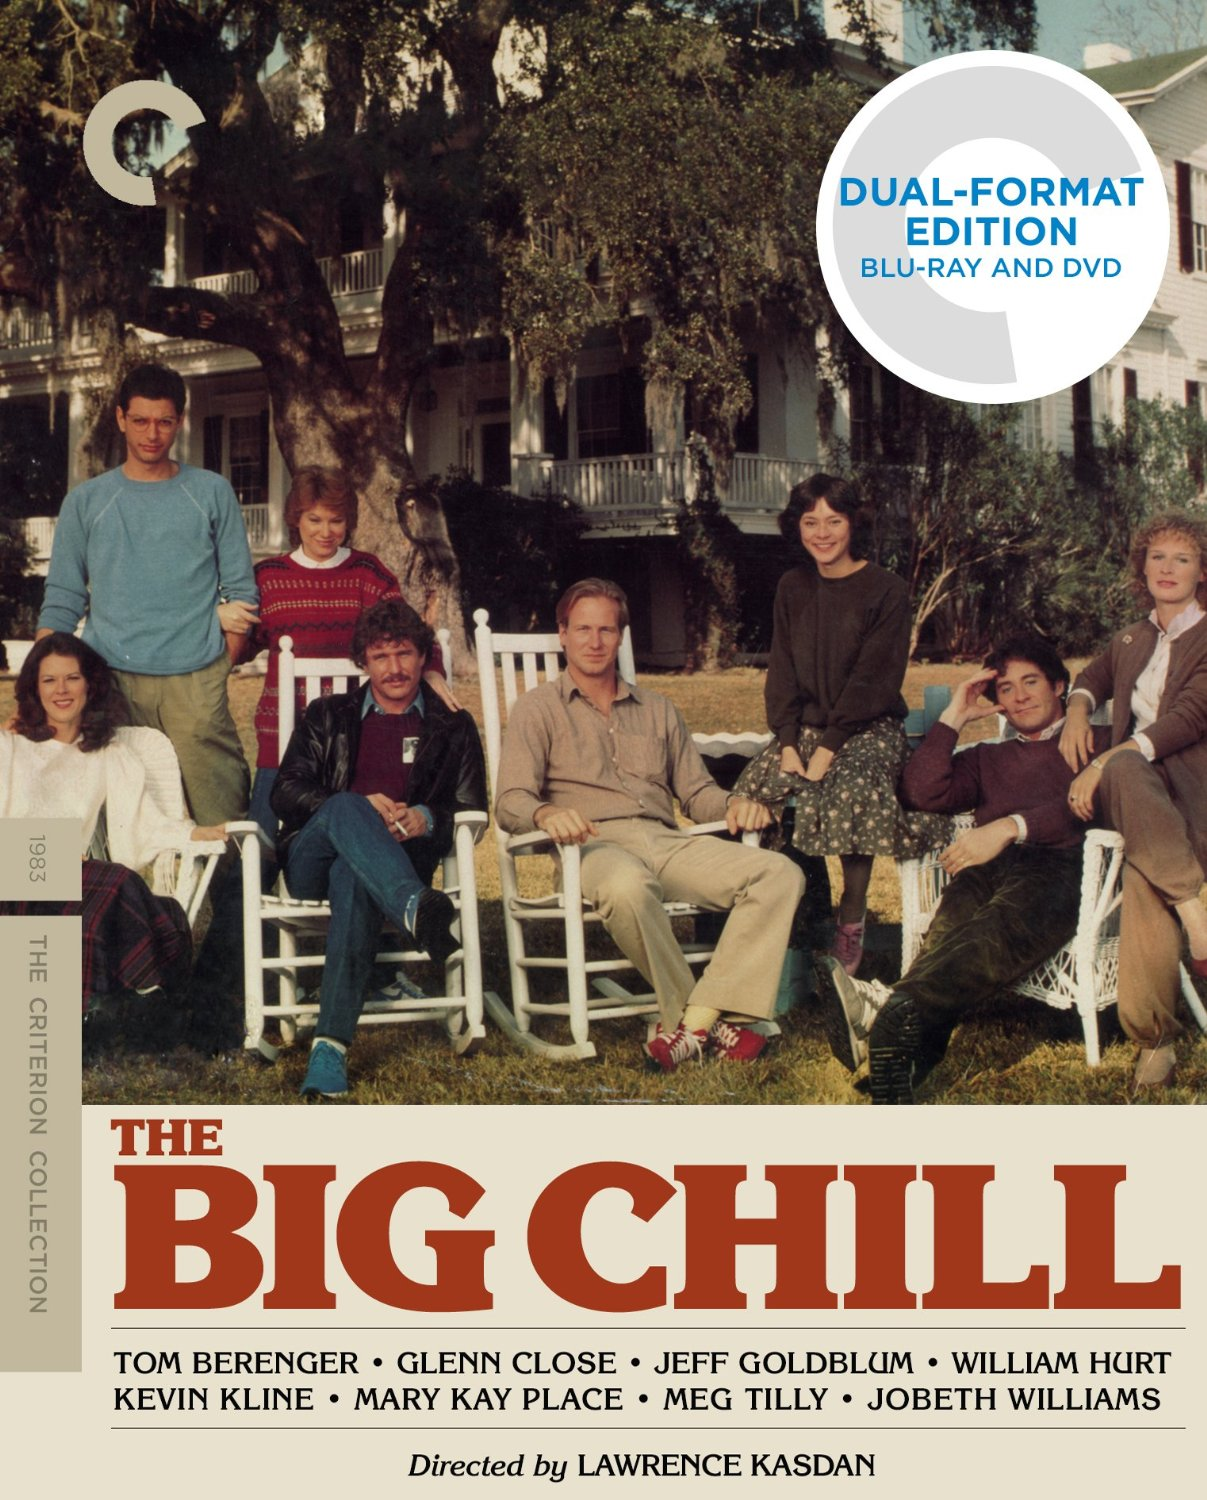 The Big Chill Blu-ray/DVD With Lots Of Extras | Family ...